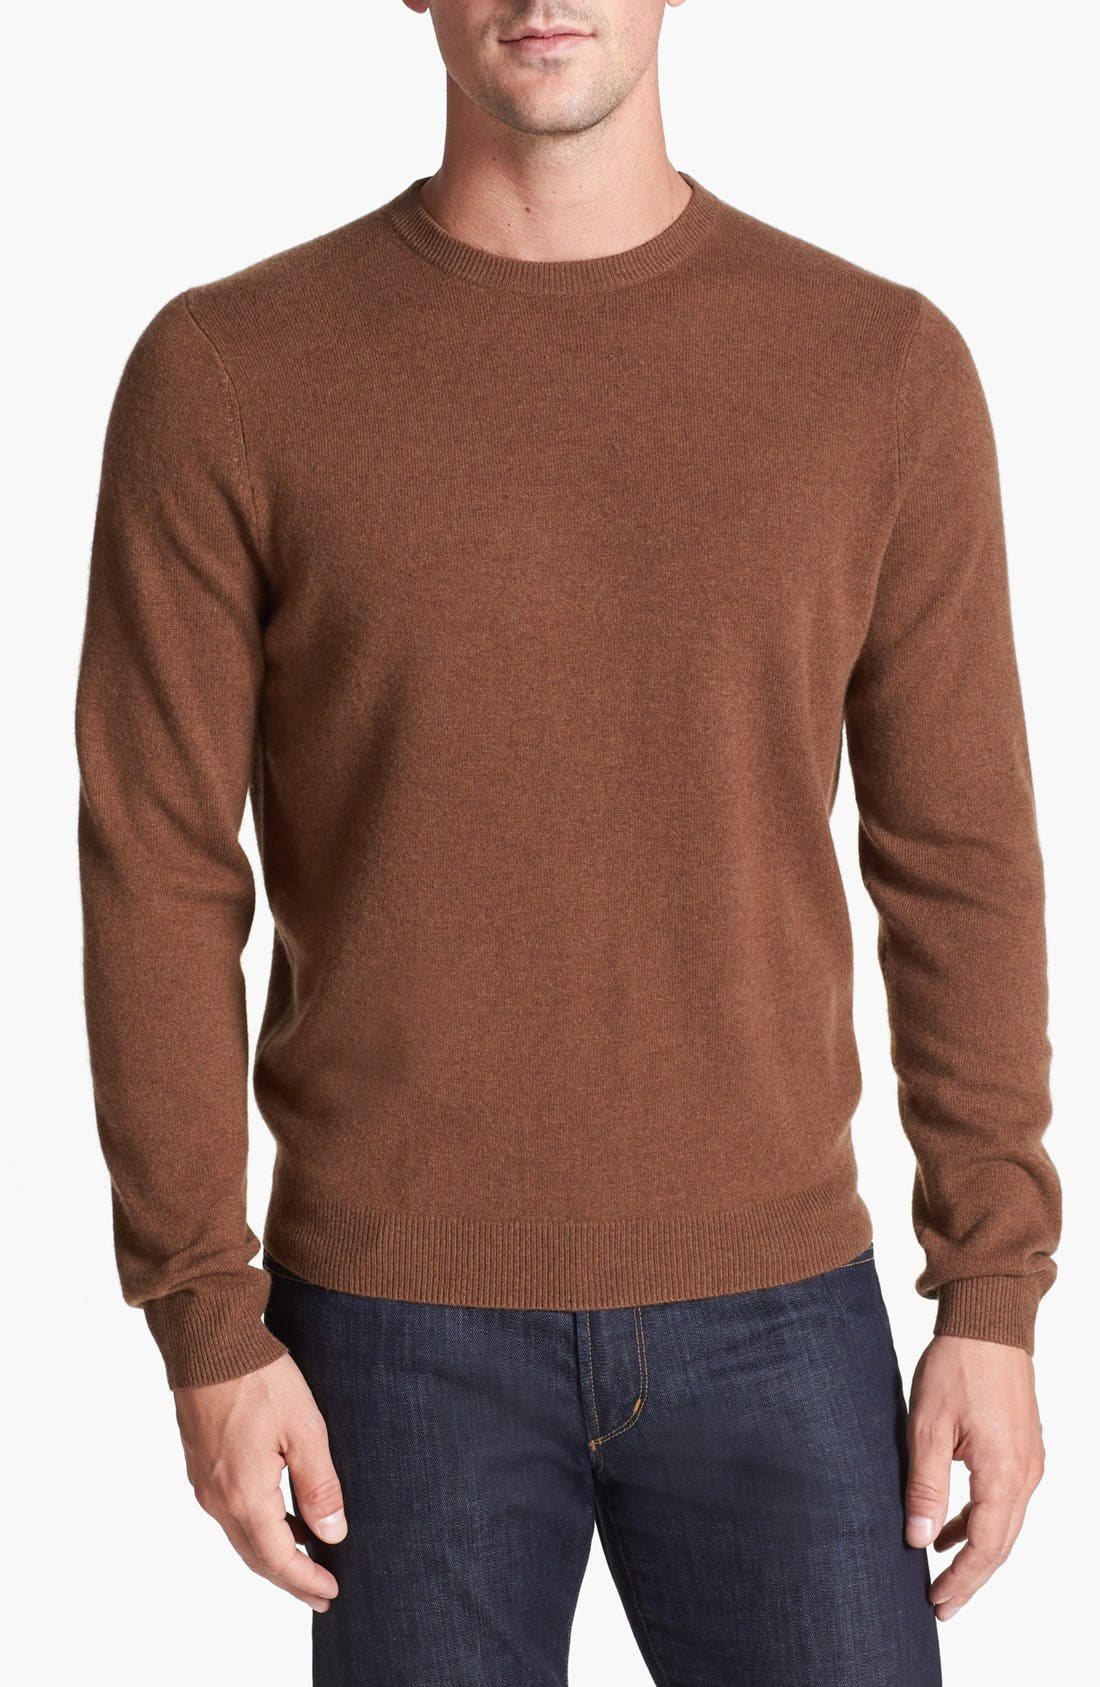 Main Image - Nordstrom Cashmere Crewneck Sweater